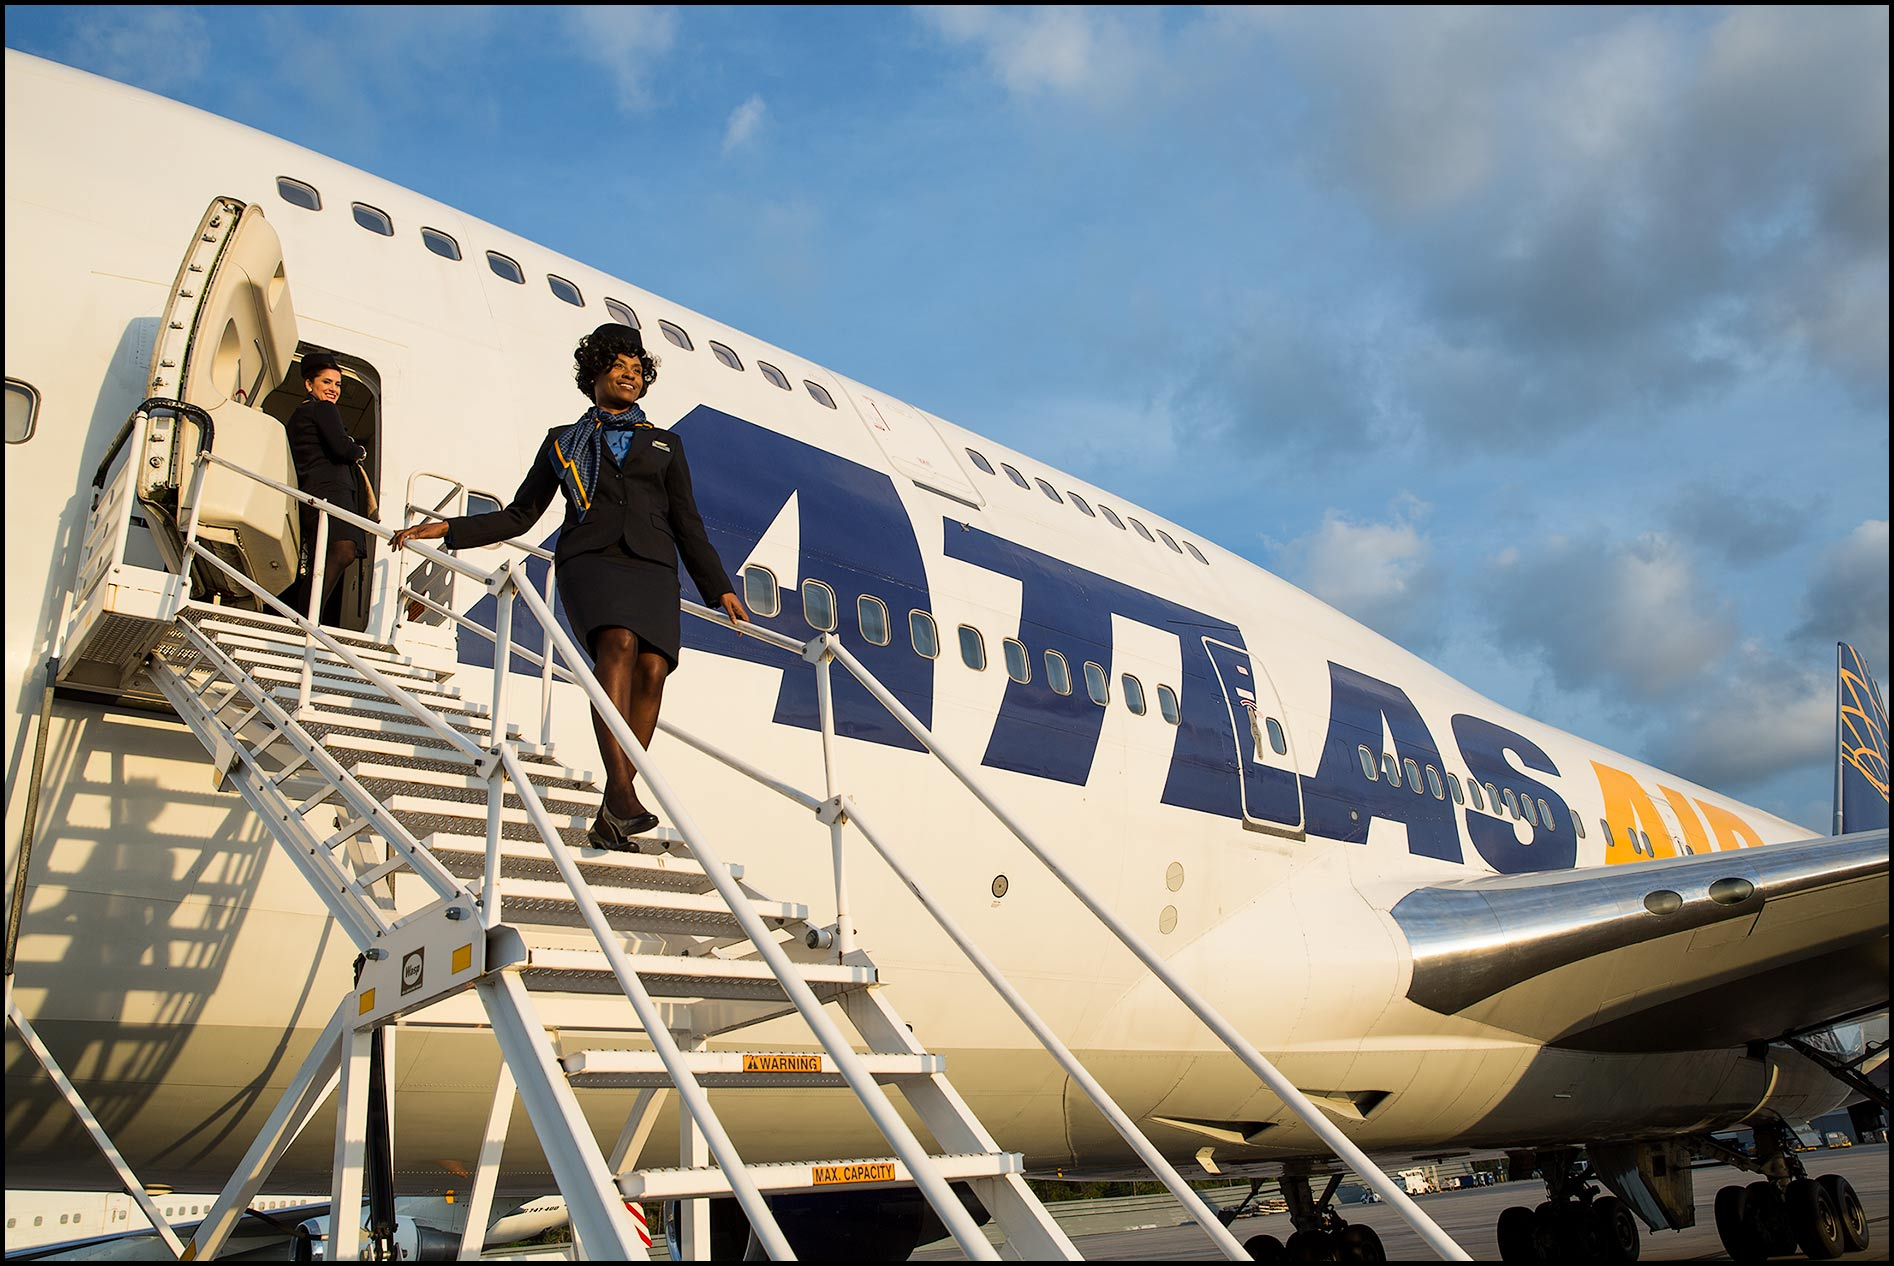 A flight attendant descends the steps of a passenger ramp of a charter jumbo jet.